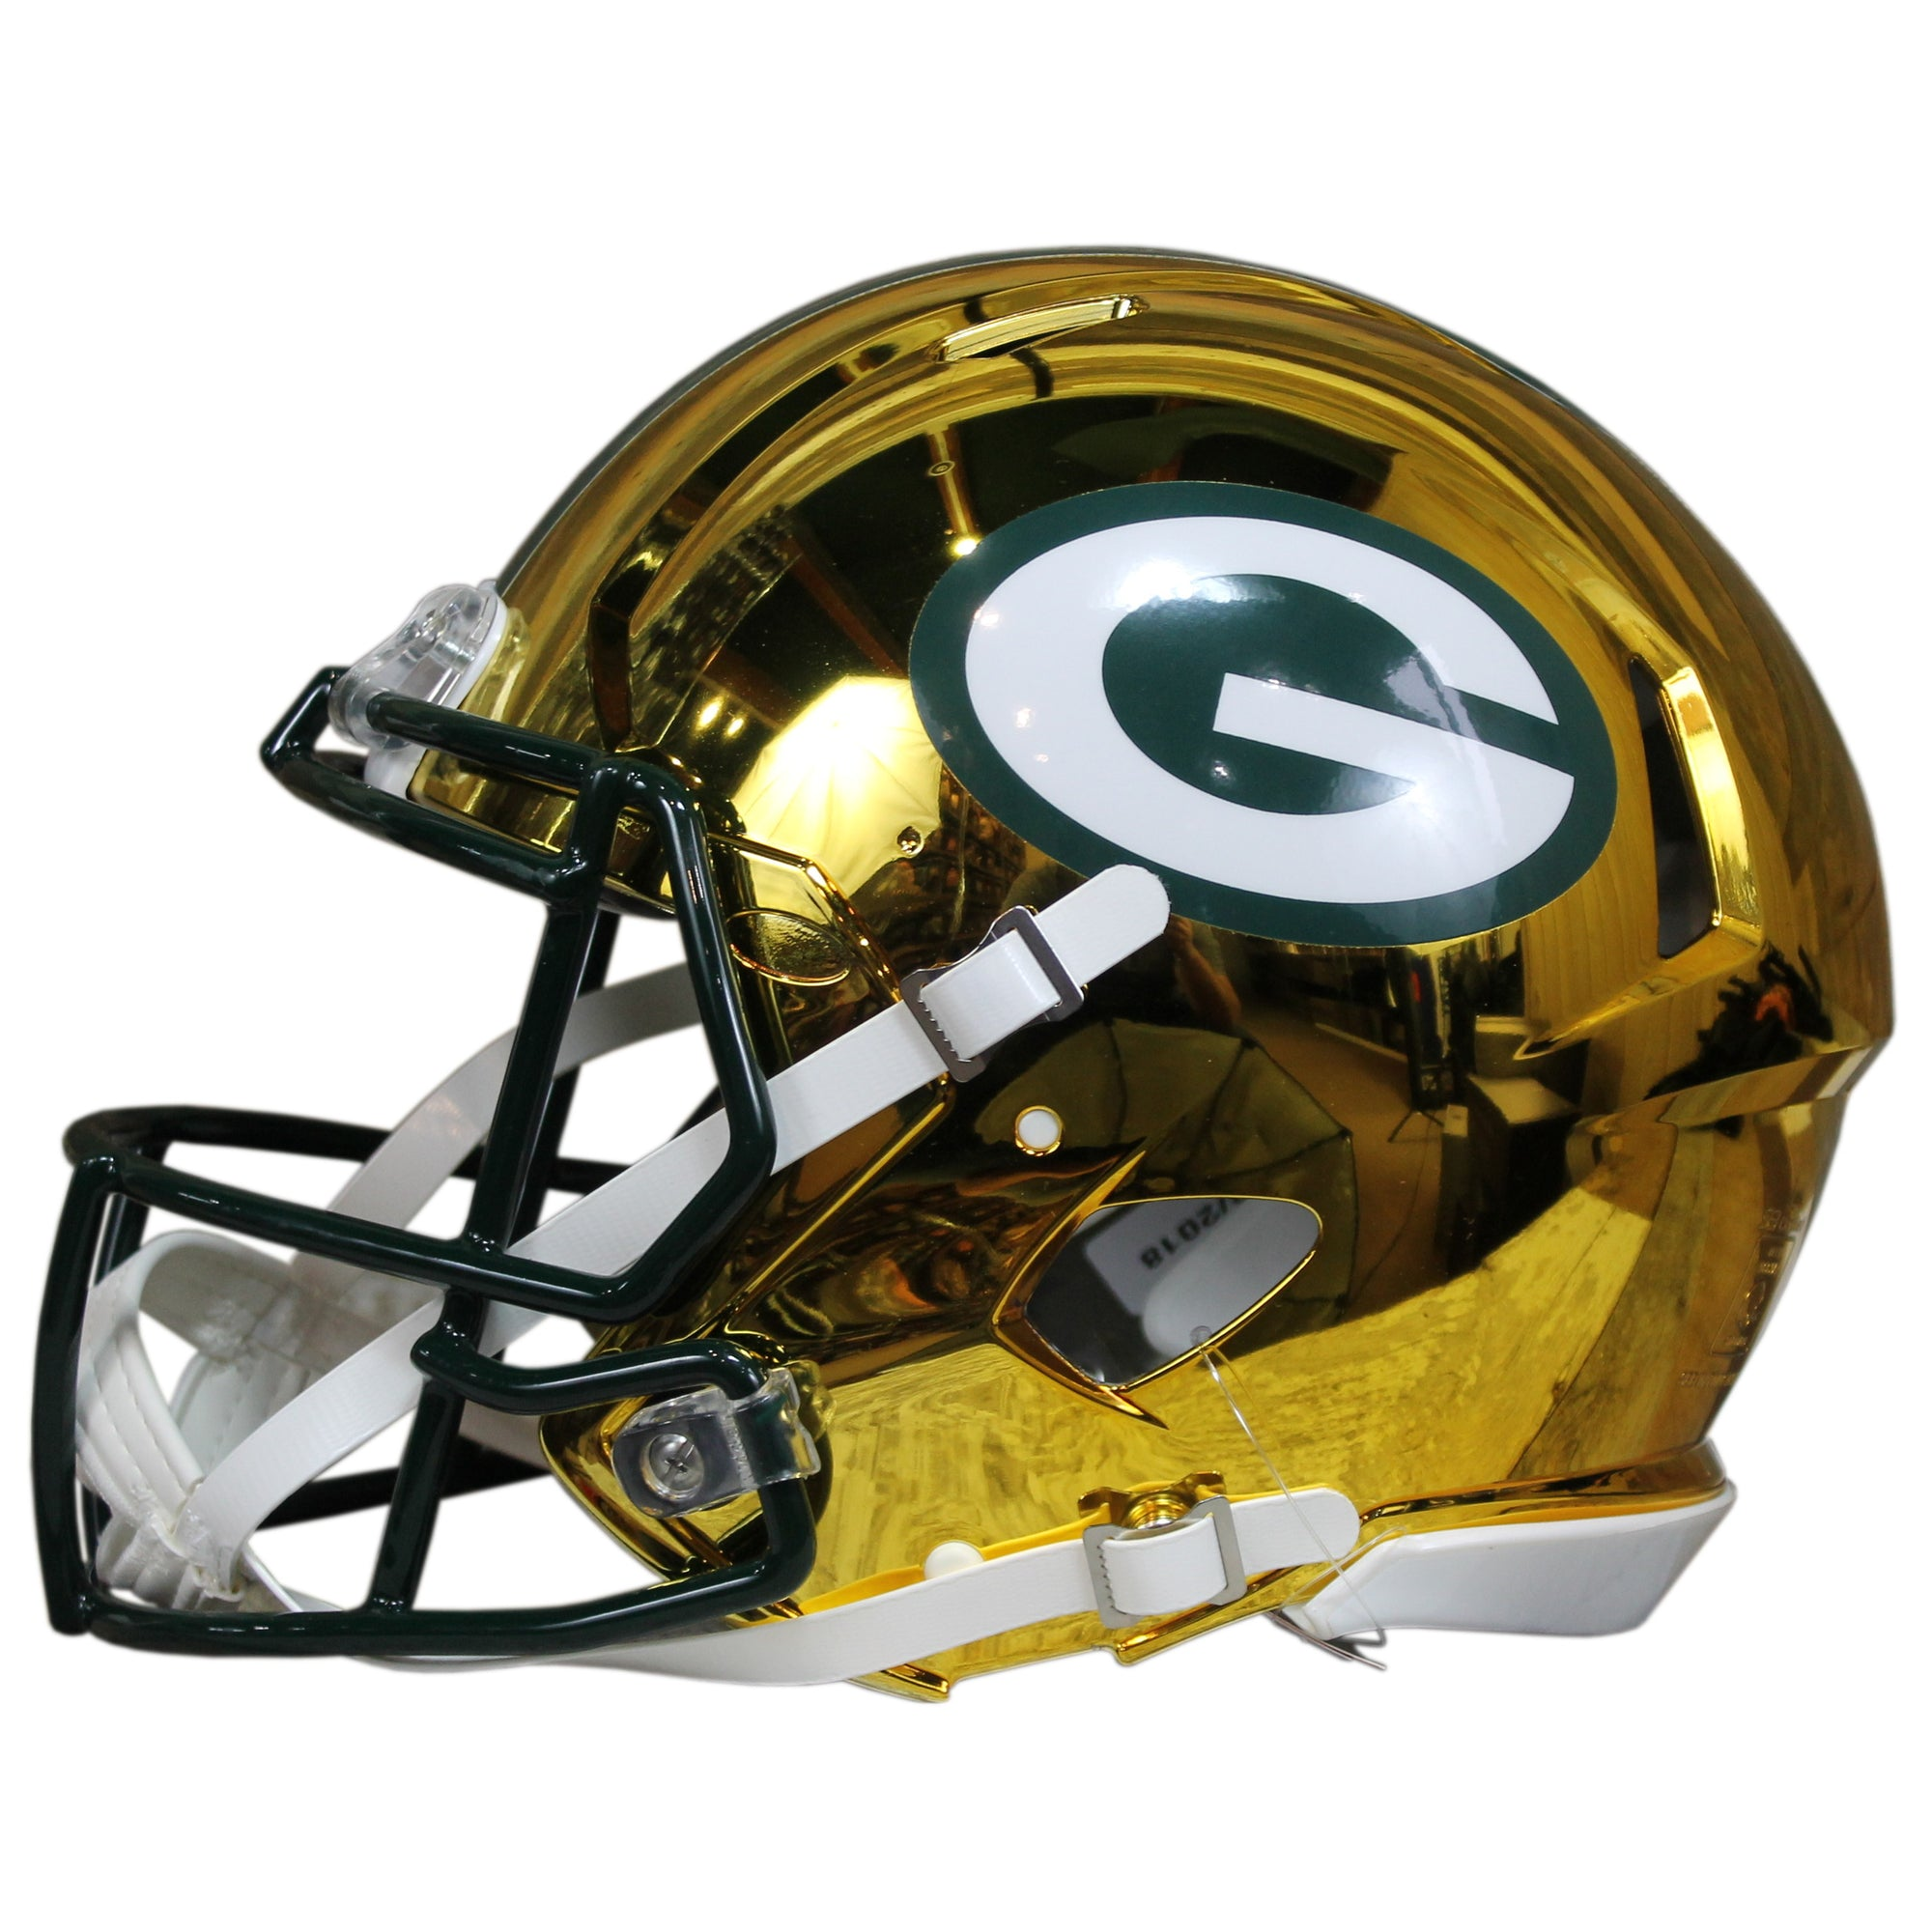 873bcbe3e Aaron Rodgers Autographed Green Bay Packers Yellow Chrome Riddell Speed  ProLine Full Size Helmet w